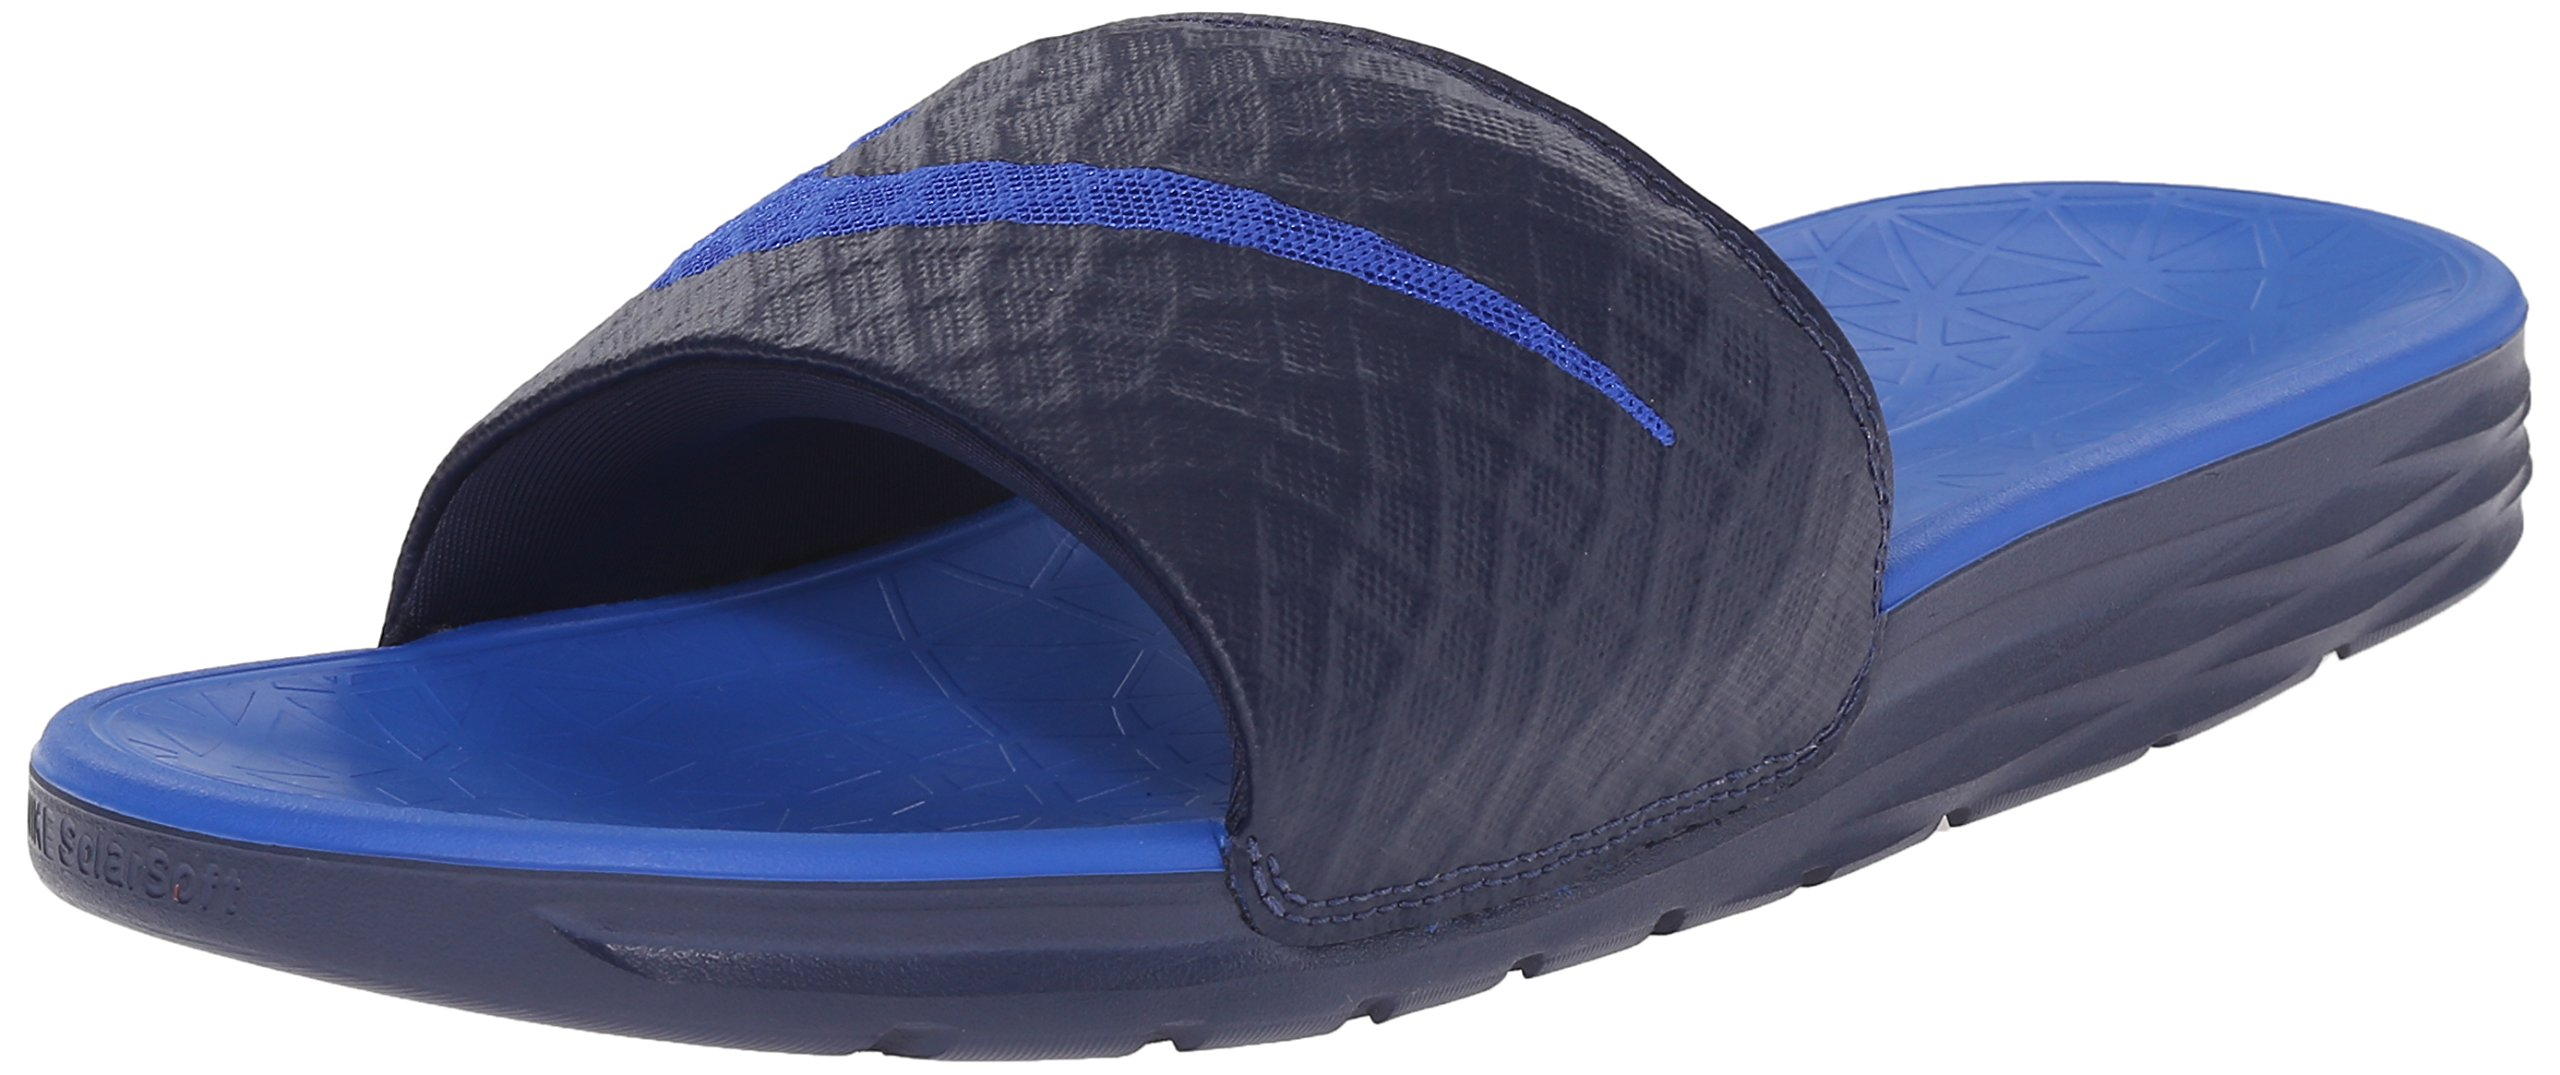 Nike Men's Benassi Solarsoft Slide Athletic Sandal, Midnight Navy/Lyon Blue, 14 D(M) US